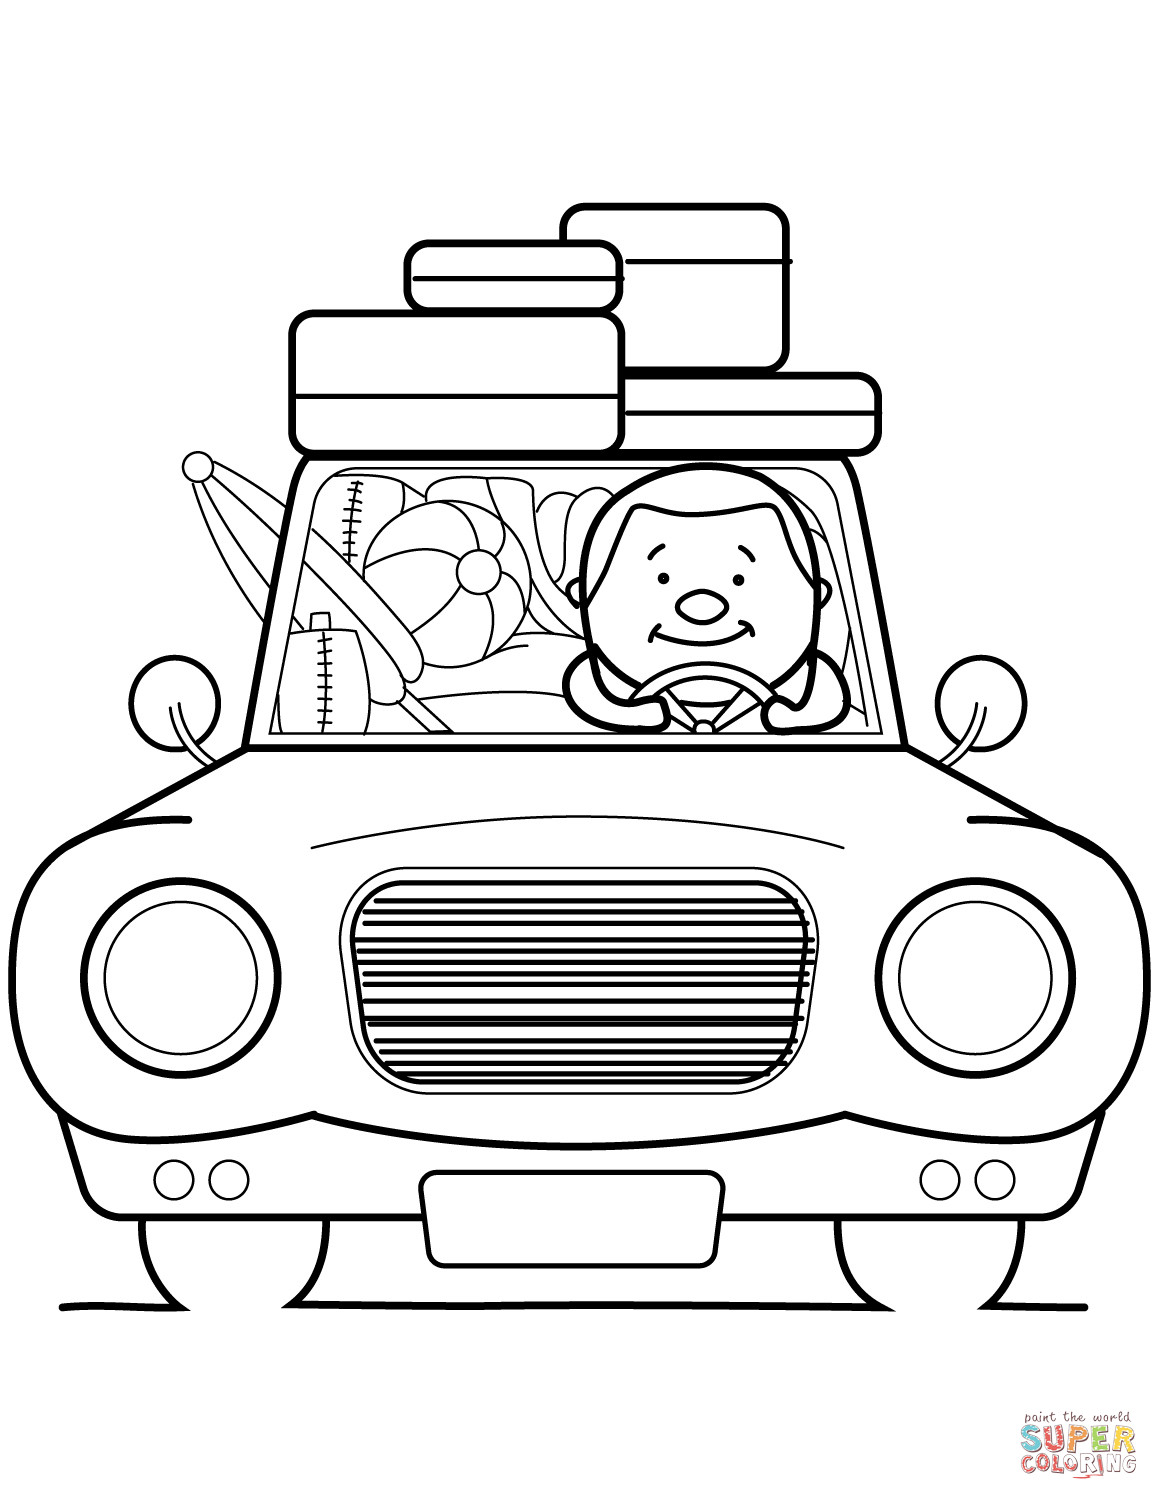 Best ideas about Coloring Sheets For Kids Summer Vacation . Save or Pin Go Summer Vacation coloring page Now.